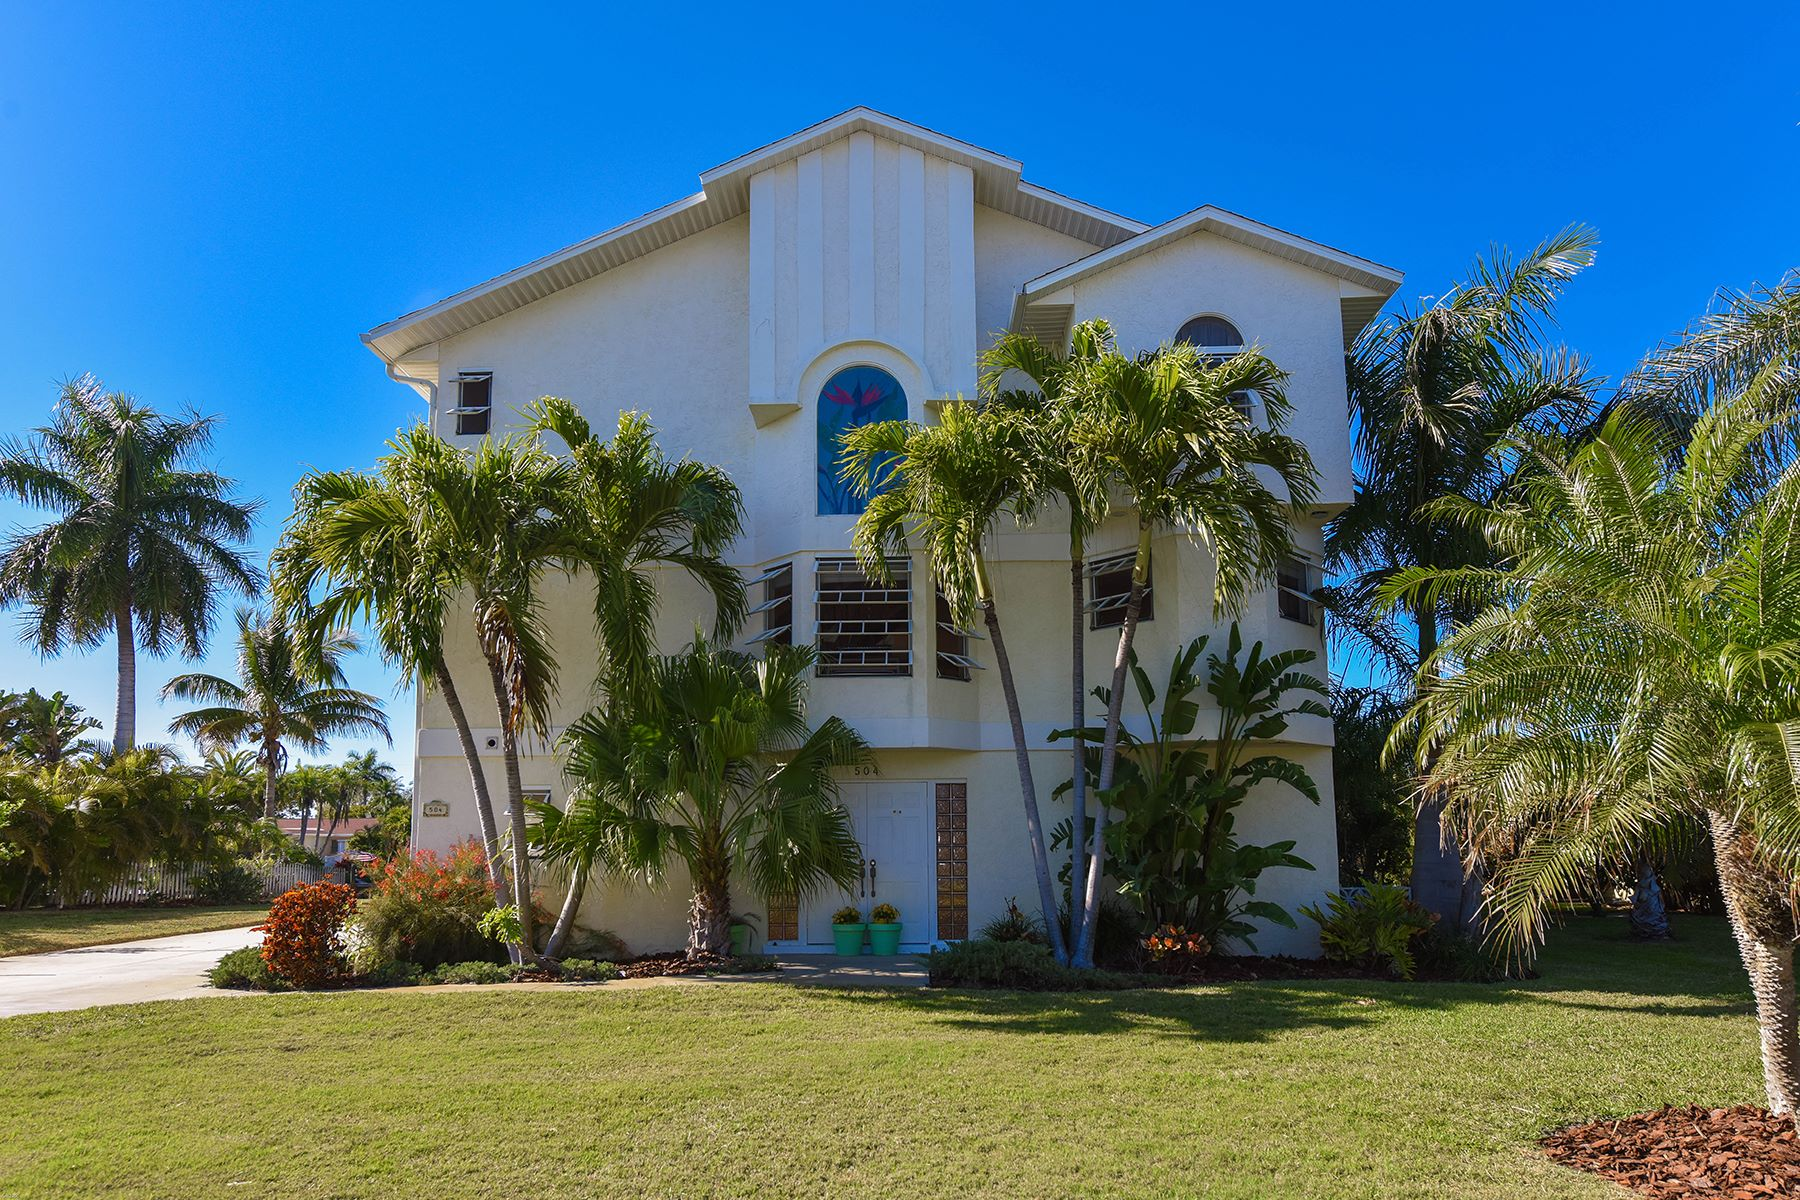 Single Family Home for Sale at HOLMES BEACH 504 74th St Holmes Beach, Florida, 34217 United States